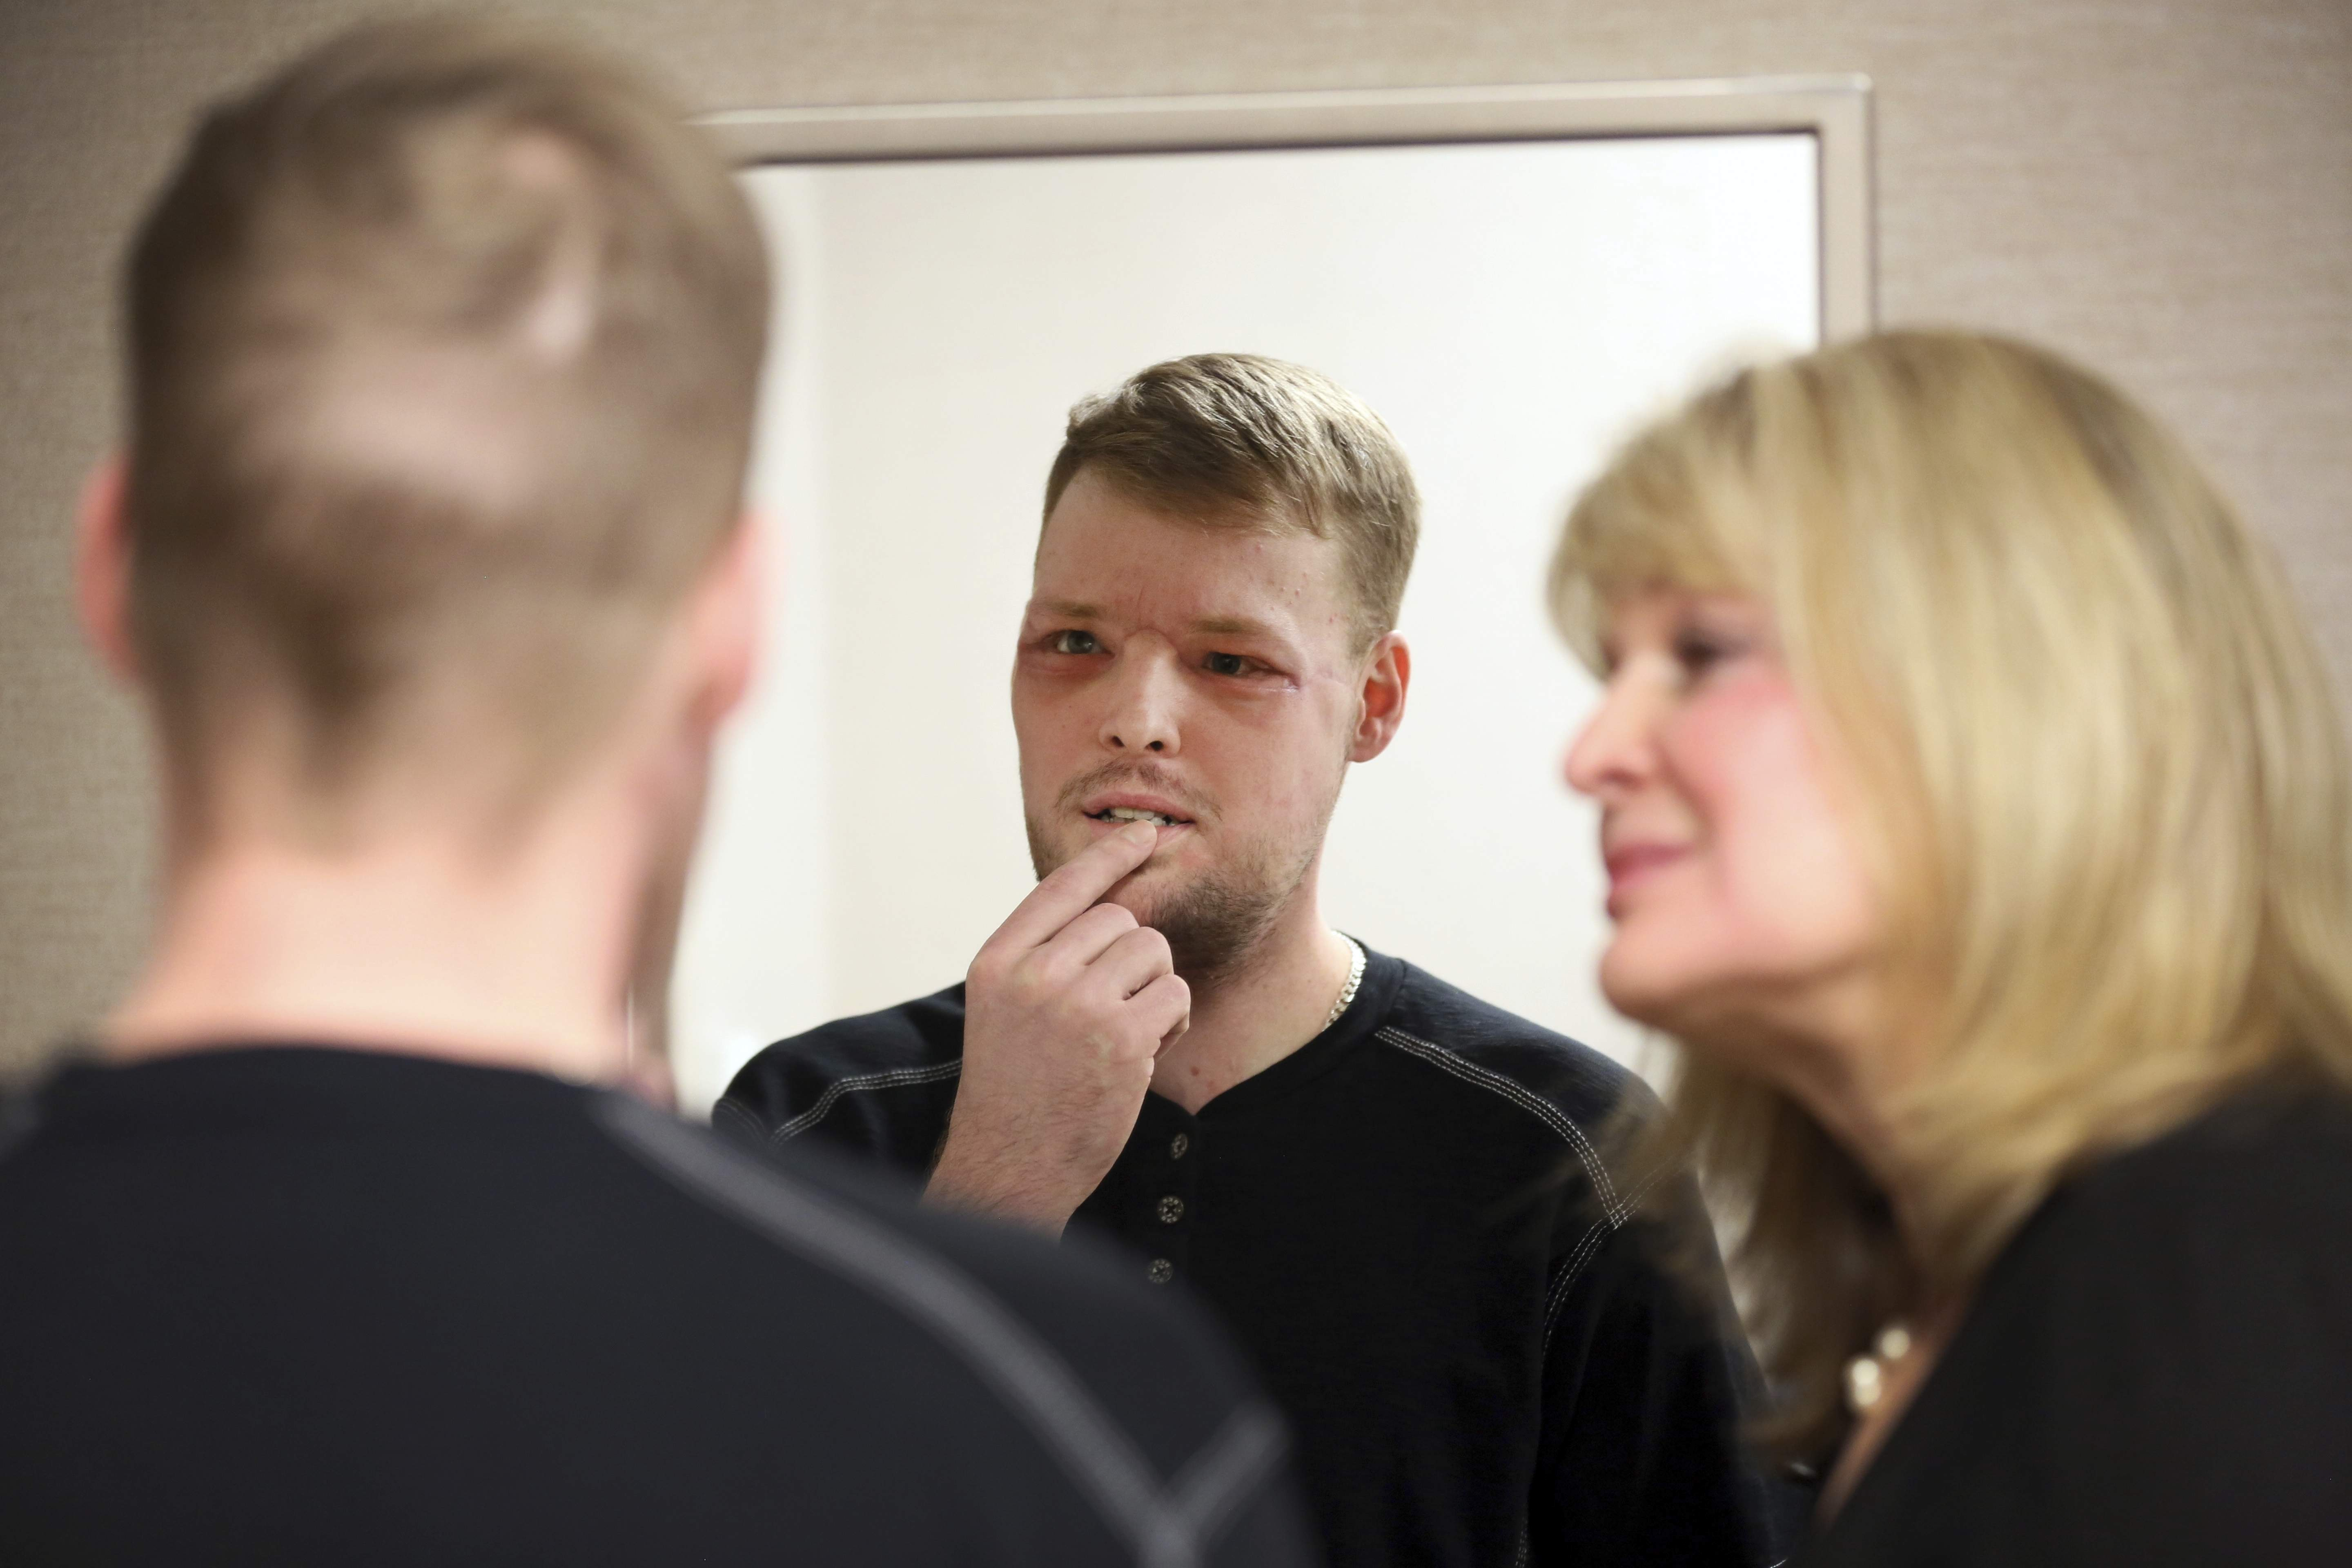 In this Jan. 24, 2017, photo, face transplant recipient Andy Sandness looks in a mirror during an appointment with physical therapist Helga Smars, right, at Mayo Clinic in Rochester, Minn. He wasn't allowed to see himself immediately after the surgery. His room mirror and cell phone were removed. When he finally did see his face after three weeks, he was overwhelmed. 'Once you lose something that you've had forever, you know what it's like not to have it. ... And once you get a second chance to have it back, you never forget it.' Just having a nose and mouth are blessings, Sandness says. 'The looks are a bonus.' THE ASSOCIATED PRESS